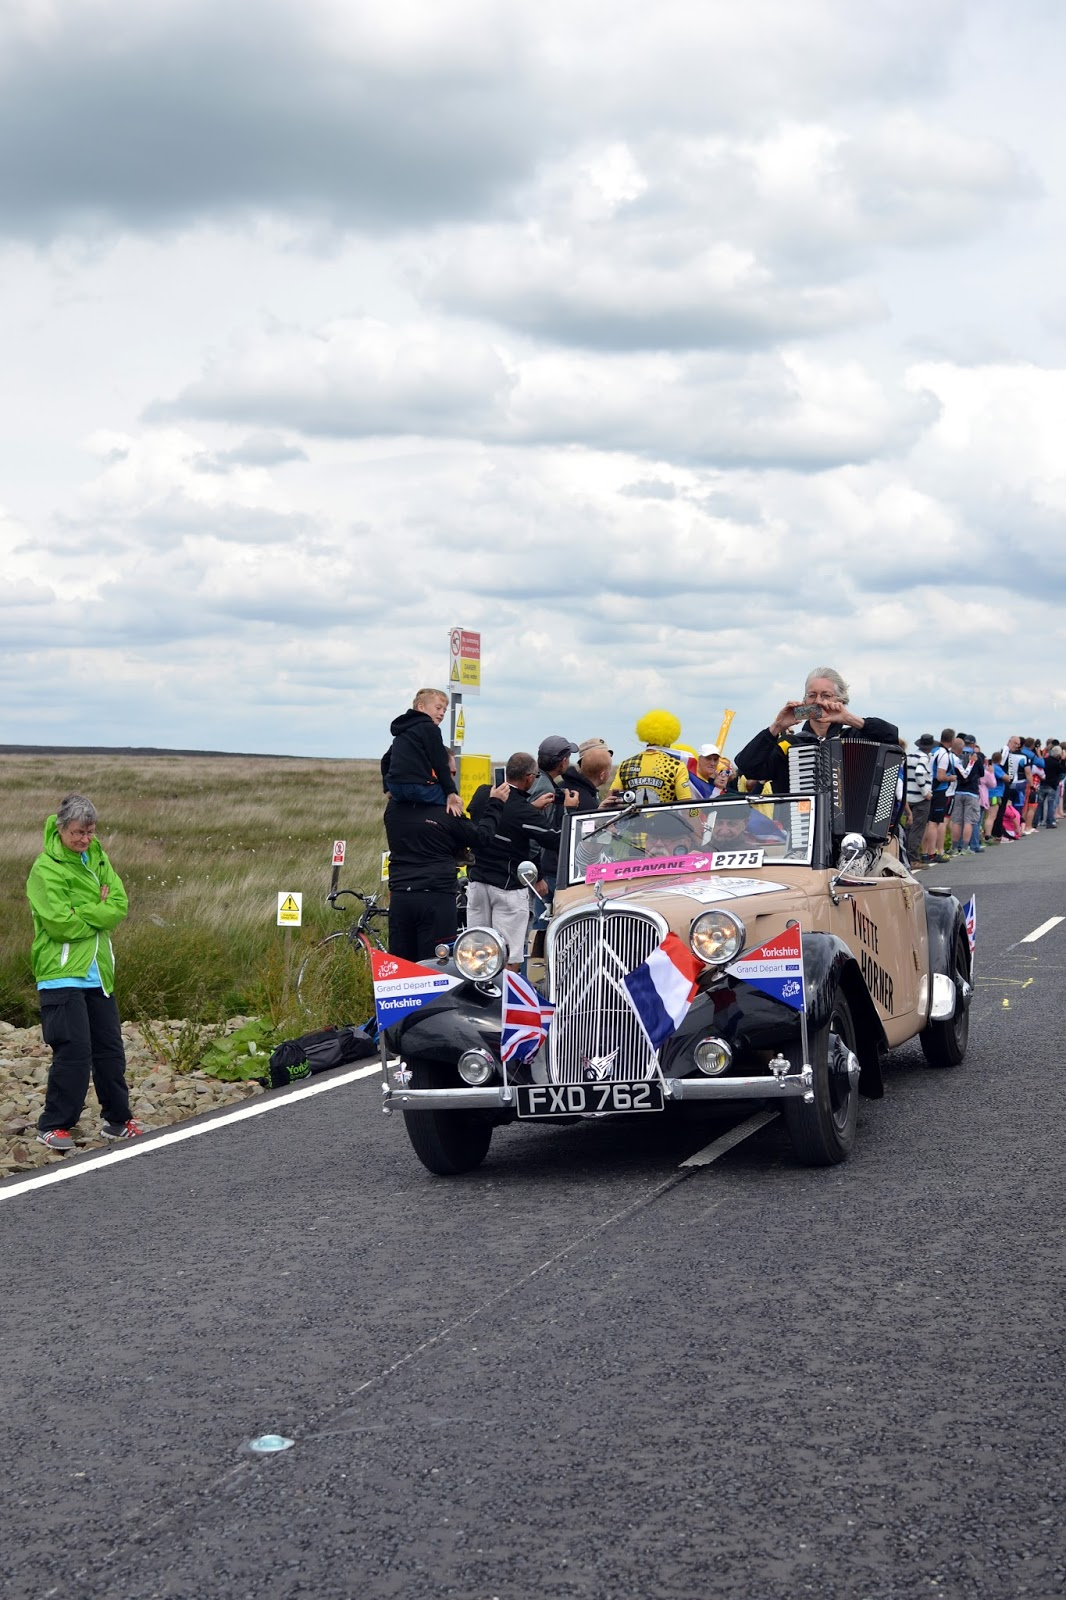 caravan, le tour de france, le tour, the tour de france, team sky, peloton, yorkshire, lancashire, tour de yorkshire, blackstone edge, cycling, velo, littleborough, greater manchester, rochdale, cragg vale, north west, TDF, 2014, bikes, photography, sport, athletes, cyclists, uk, great Britain, united kingdom, france, french,